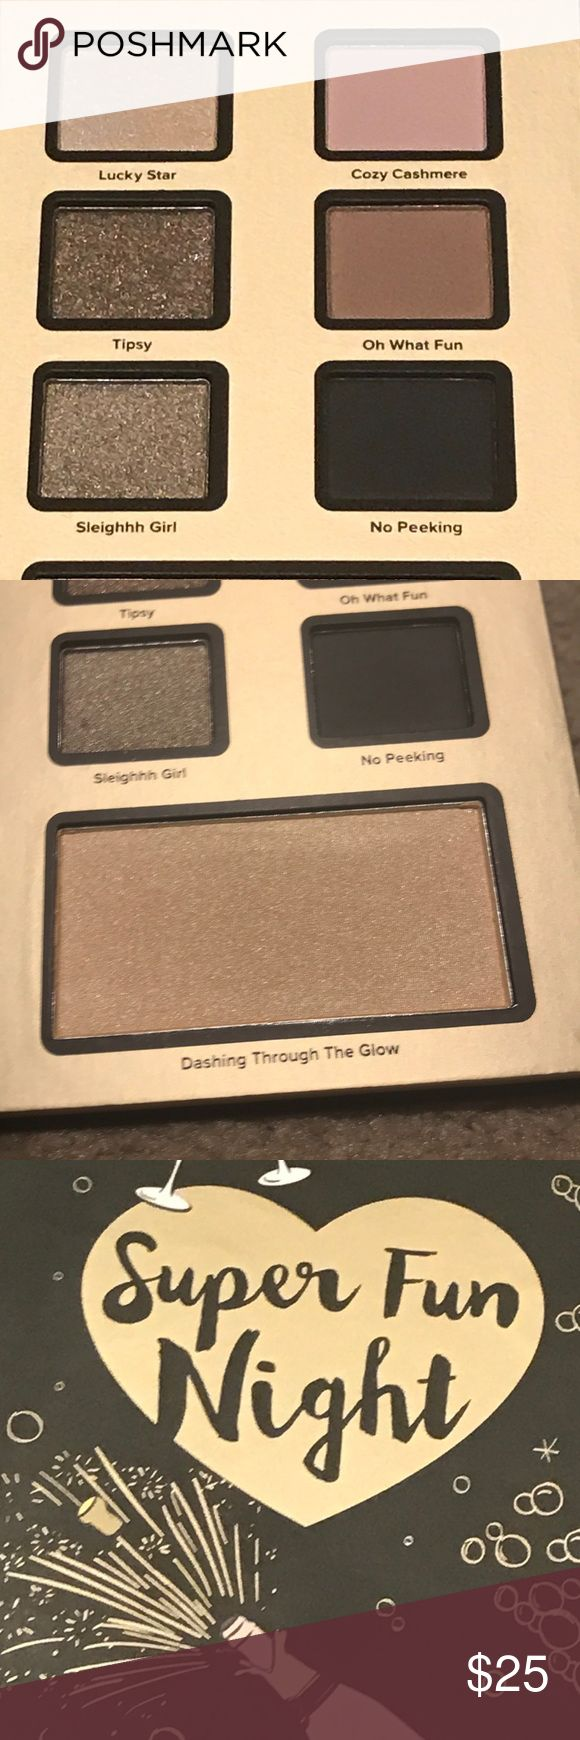 "Brand new too faced eyeshadow palate ""Super Fun Night"" palate  New and unsealed Too Faced Makeup Eyeshadow"